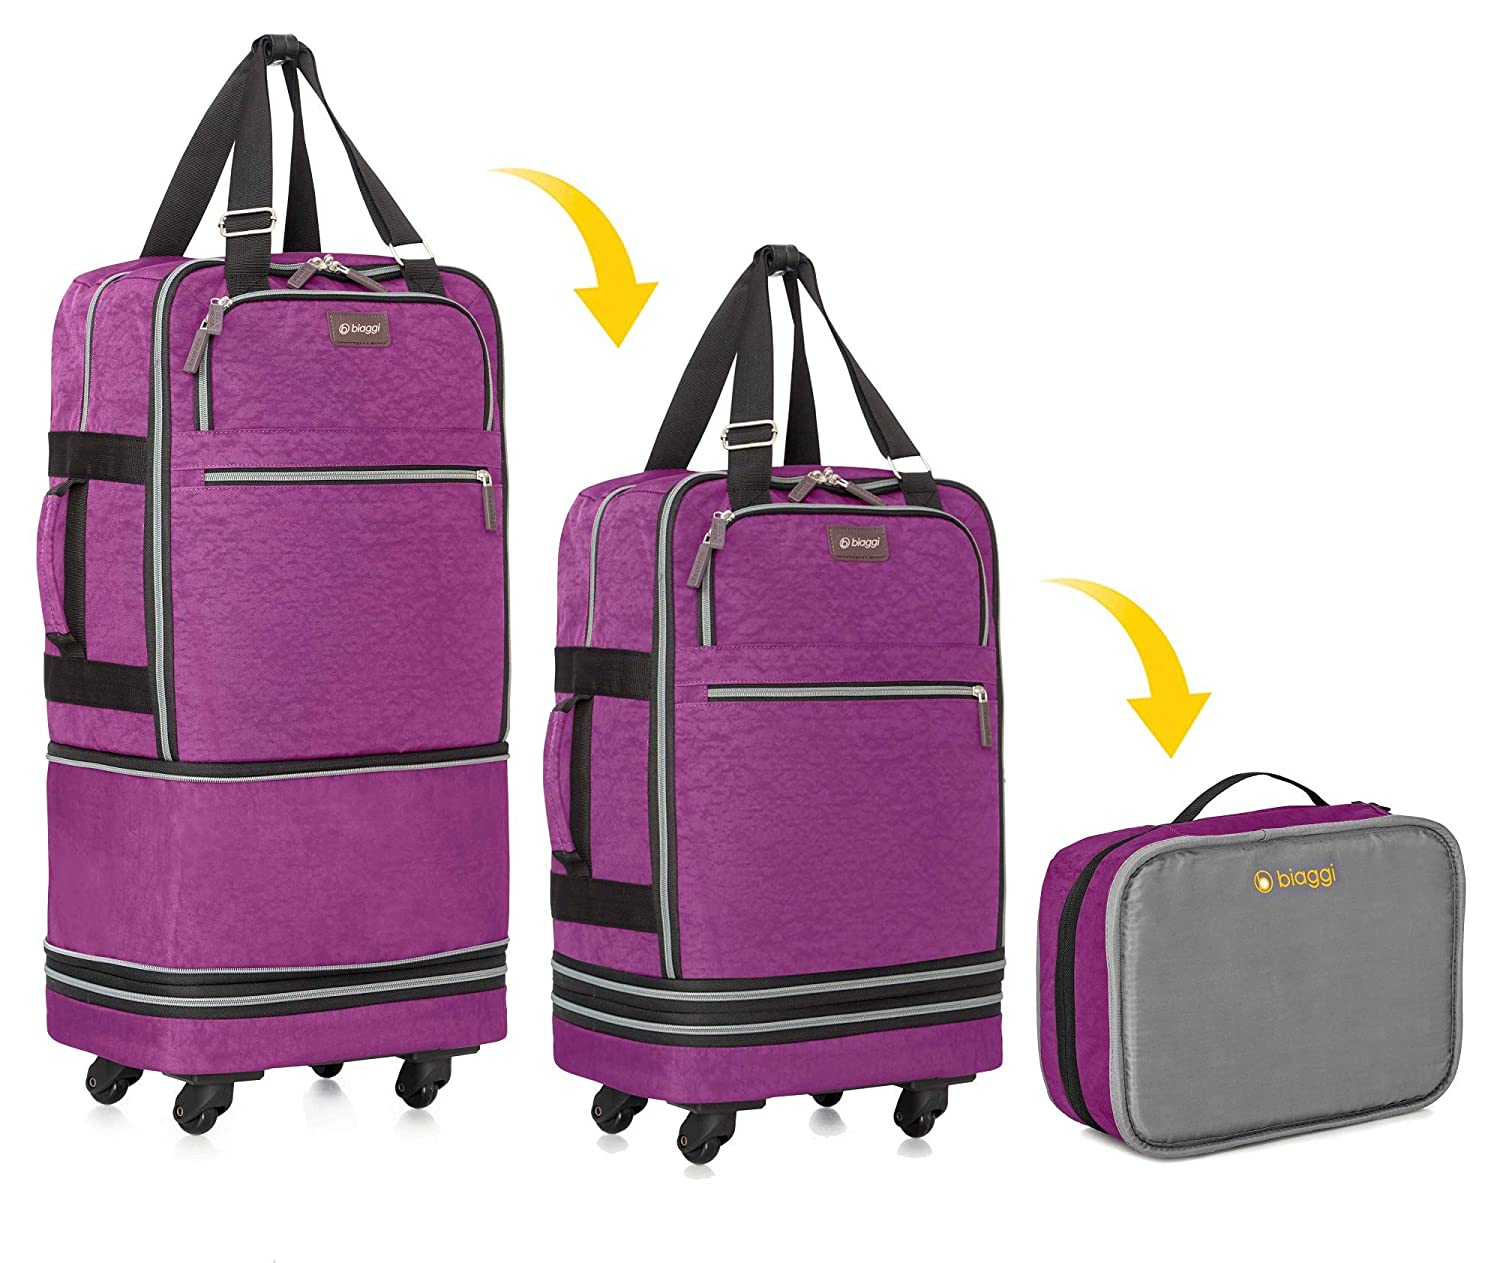 Zipsak Boost - Expandable Zipsak Carry. Carry On Expands Into a 28 Check-In bag Cobalt Blue Biaggi luggage 631128-CB